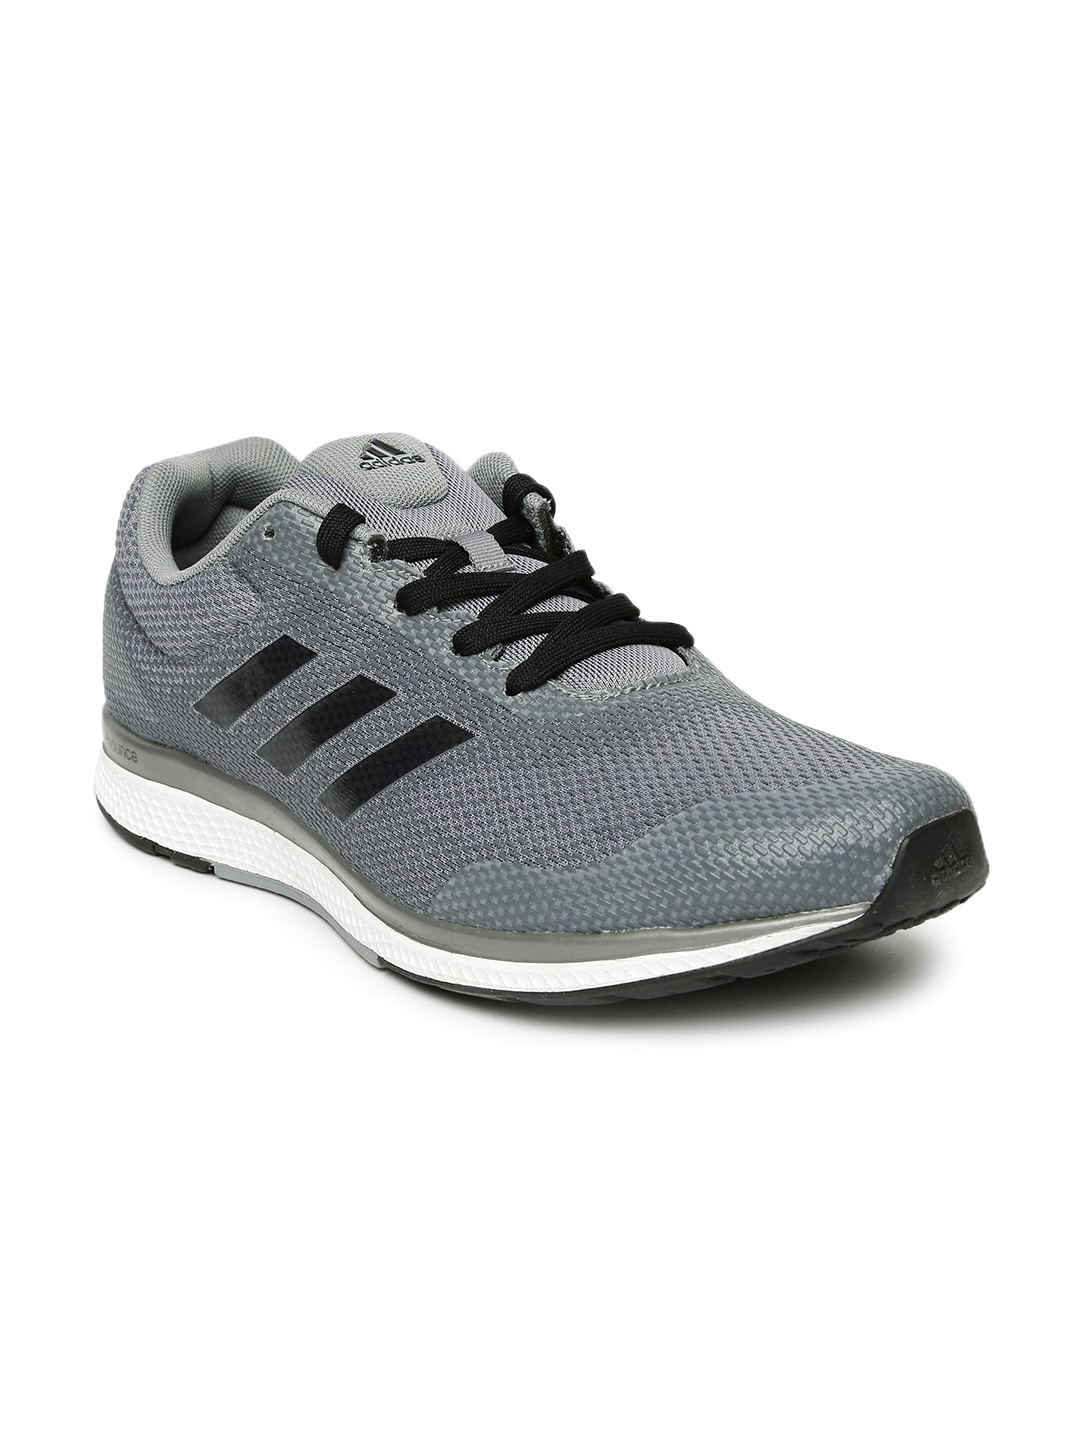 adidas Mana Bounce Mens Running Sneakers / Shoes - Blue